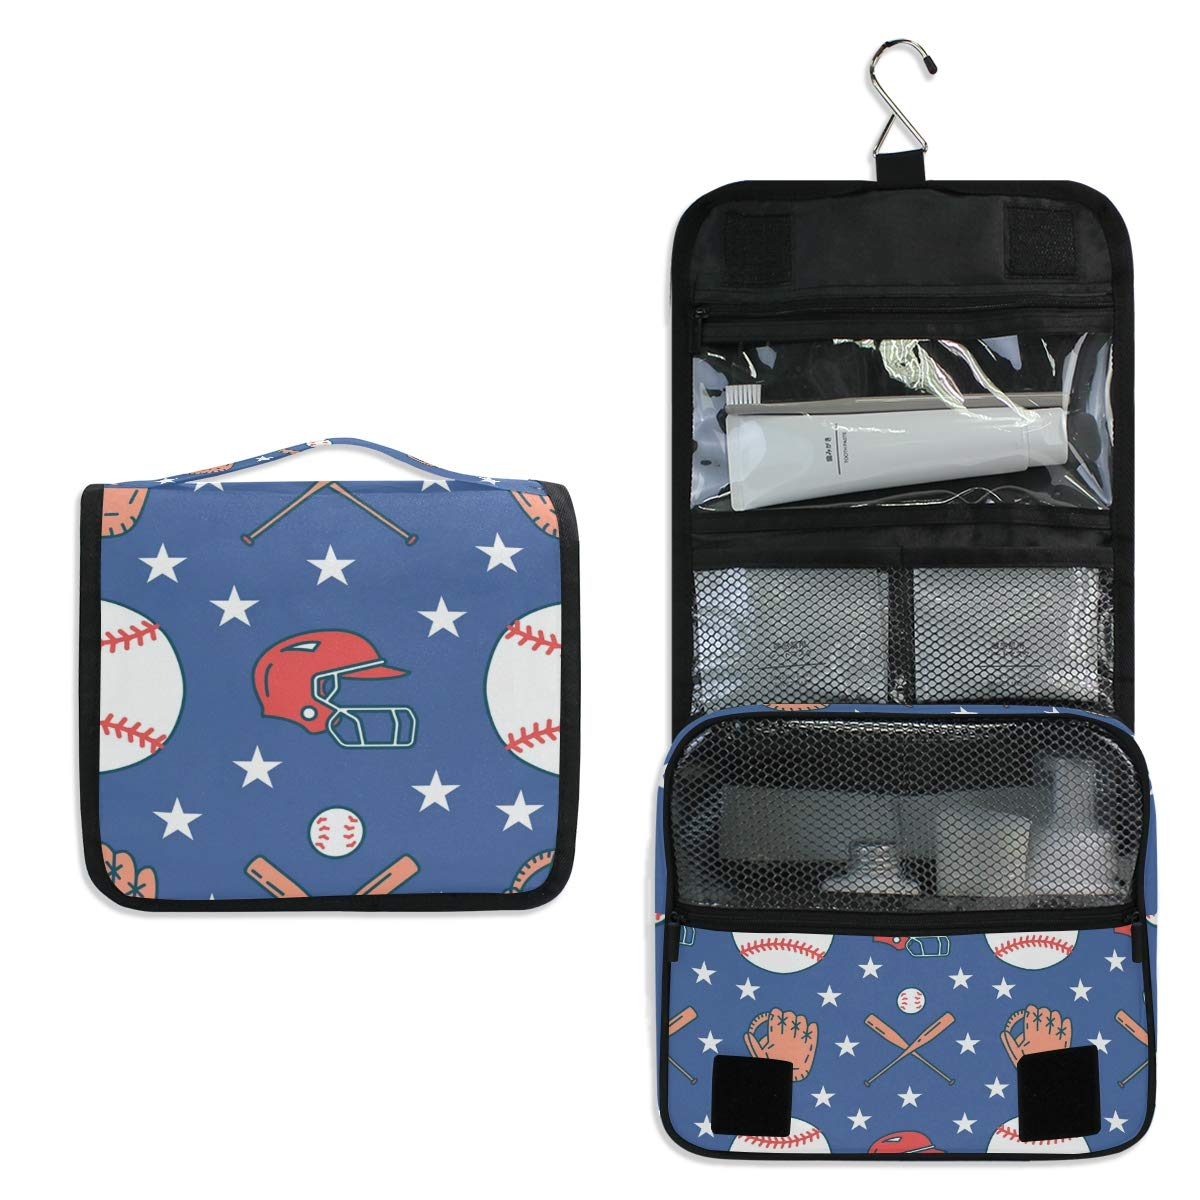 Toiletry Bag Travel Bag Hanging Hook - Baseball Softball Sport Game Waterproof Cosmetic Bag Portable Makeup Pouch for Girls Men Women